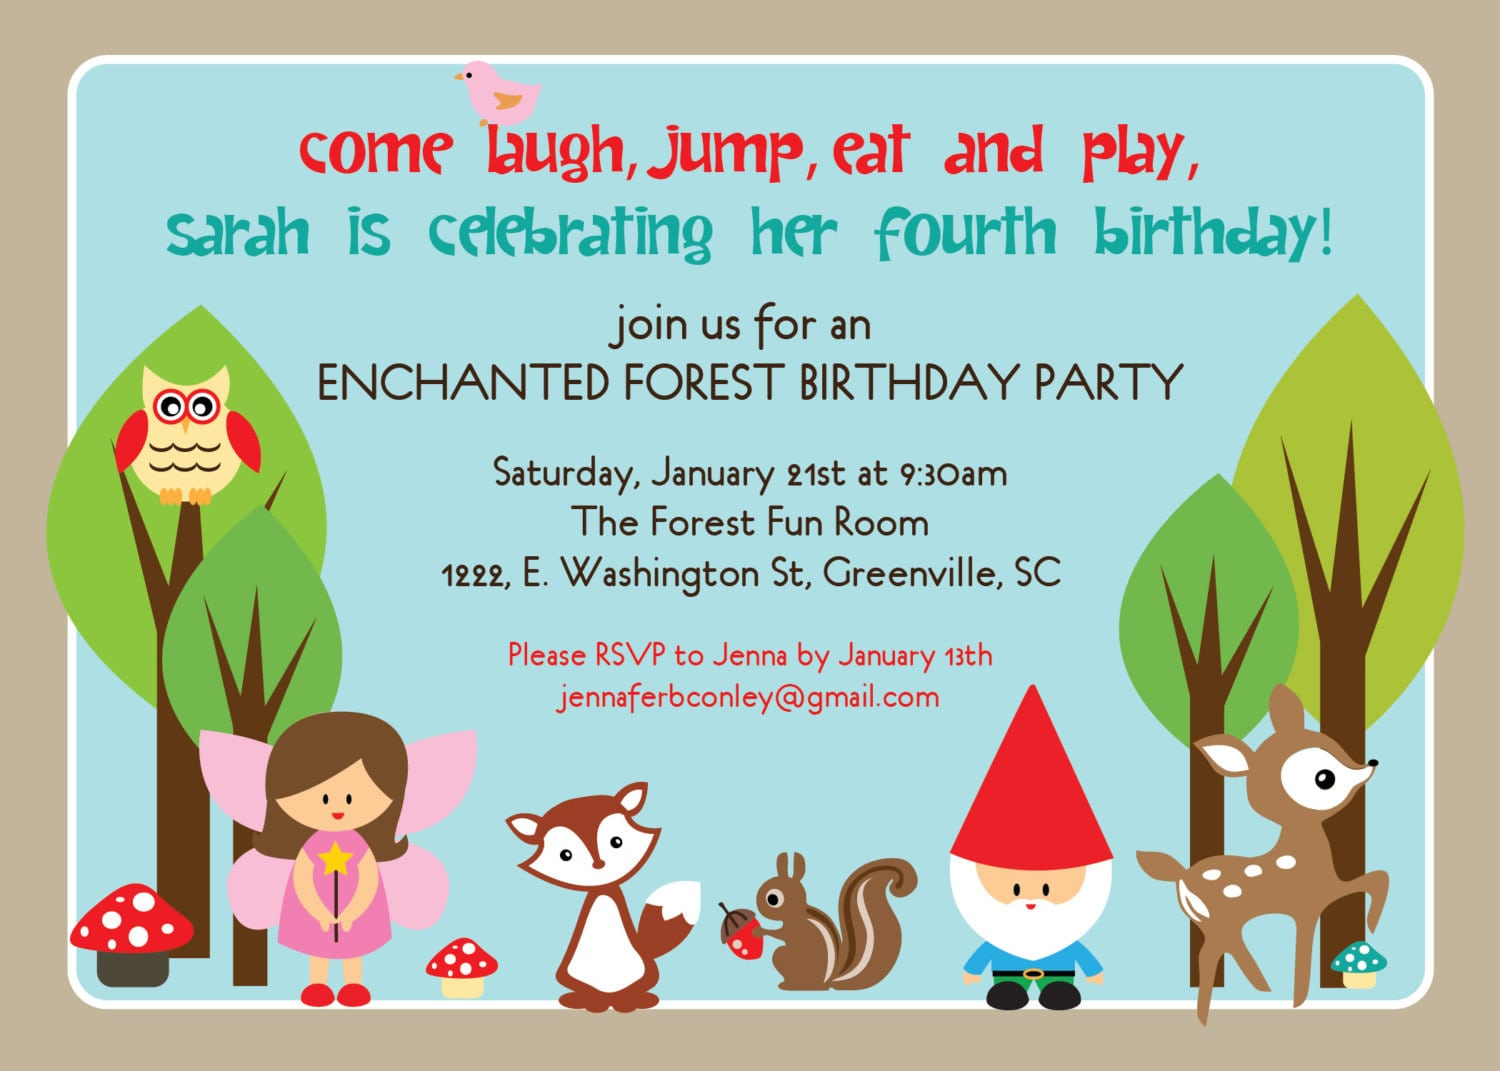 Sample invitation letter for birthday party sampleinvitationletterforbirthdayparty5g stopboris